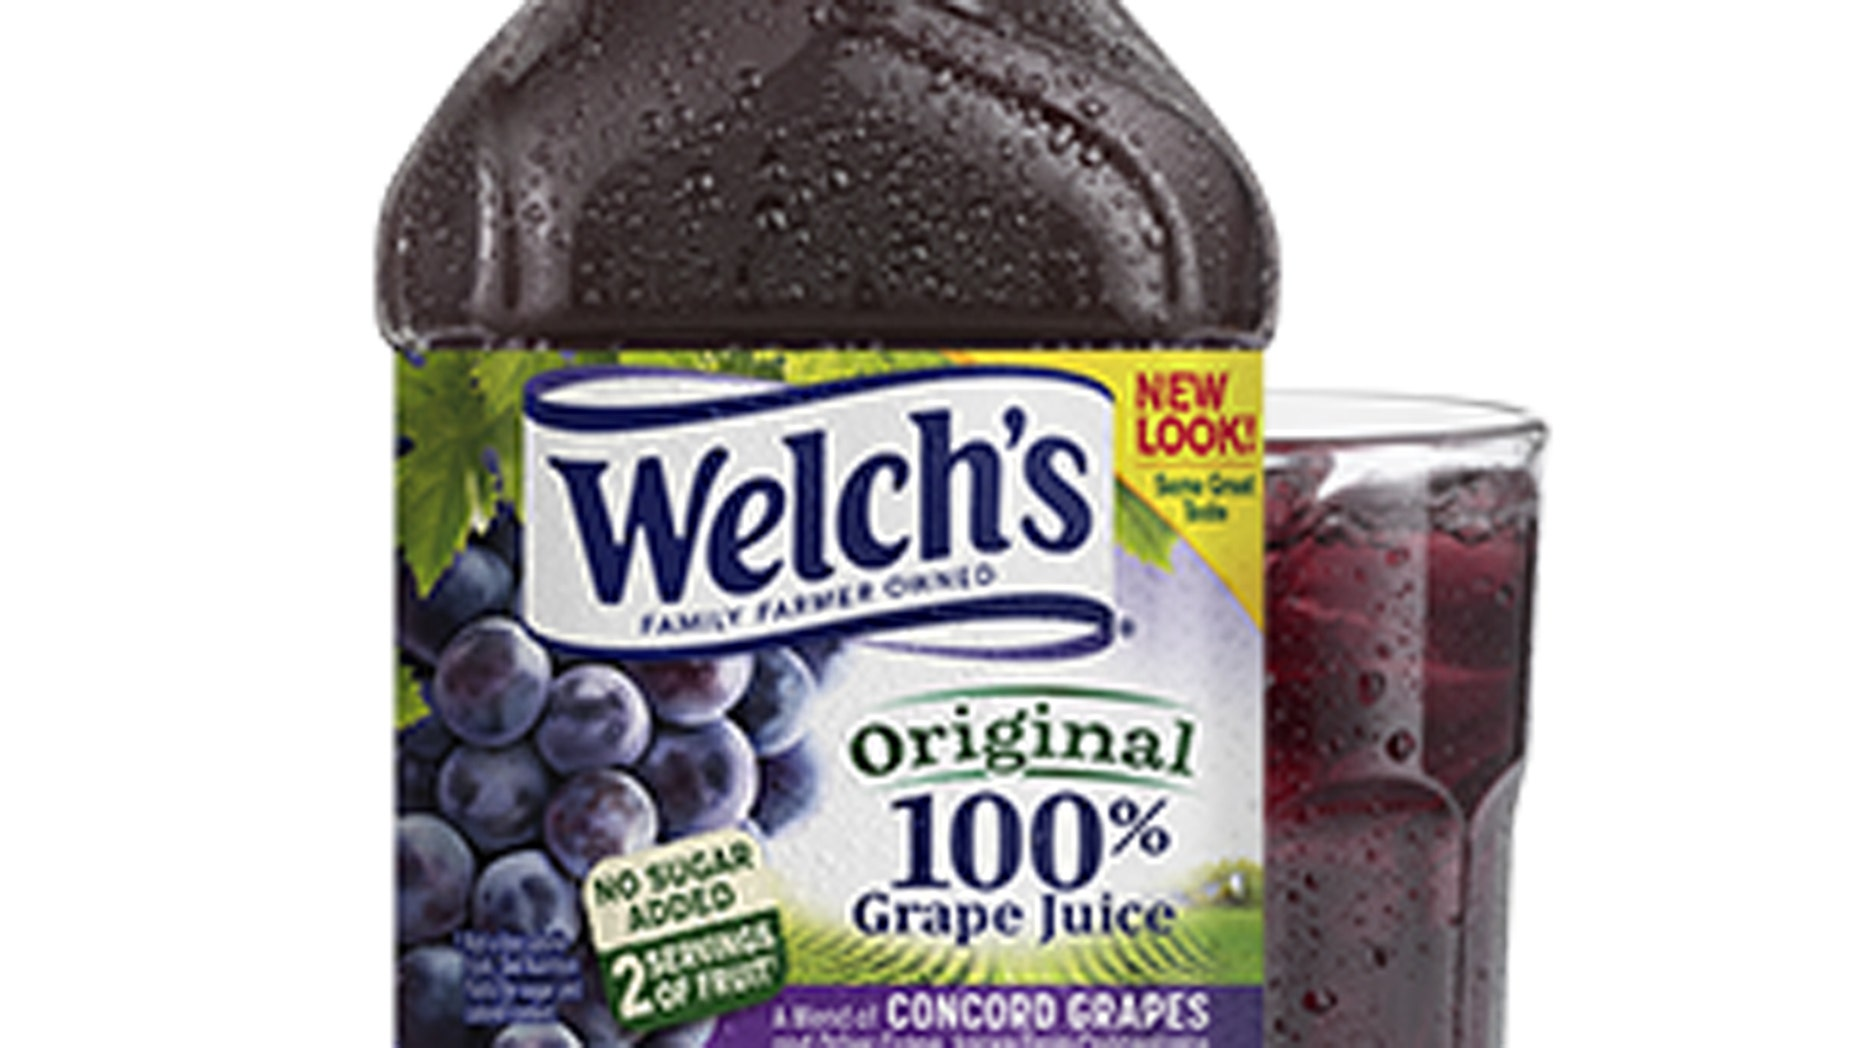 Welch's now has a kosher certified version of its popular grape juice.